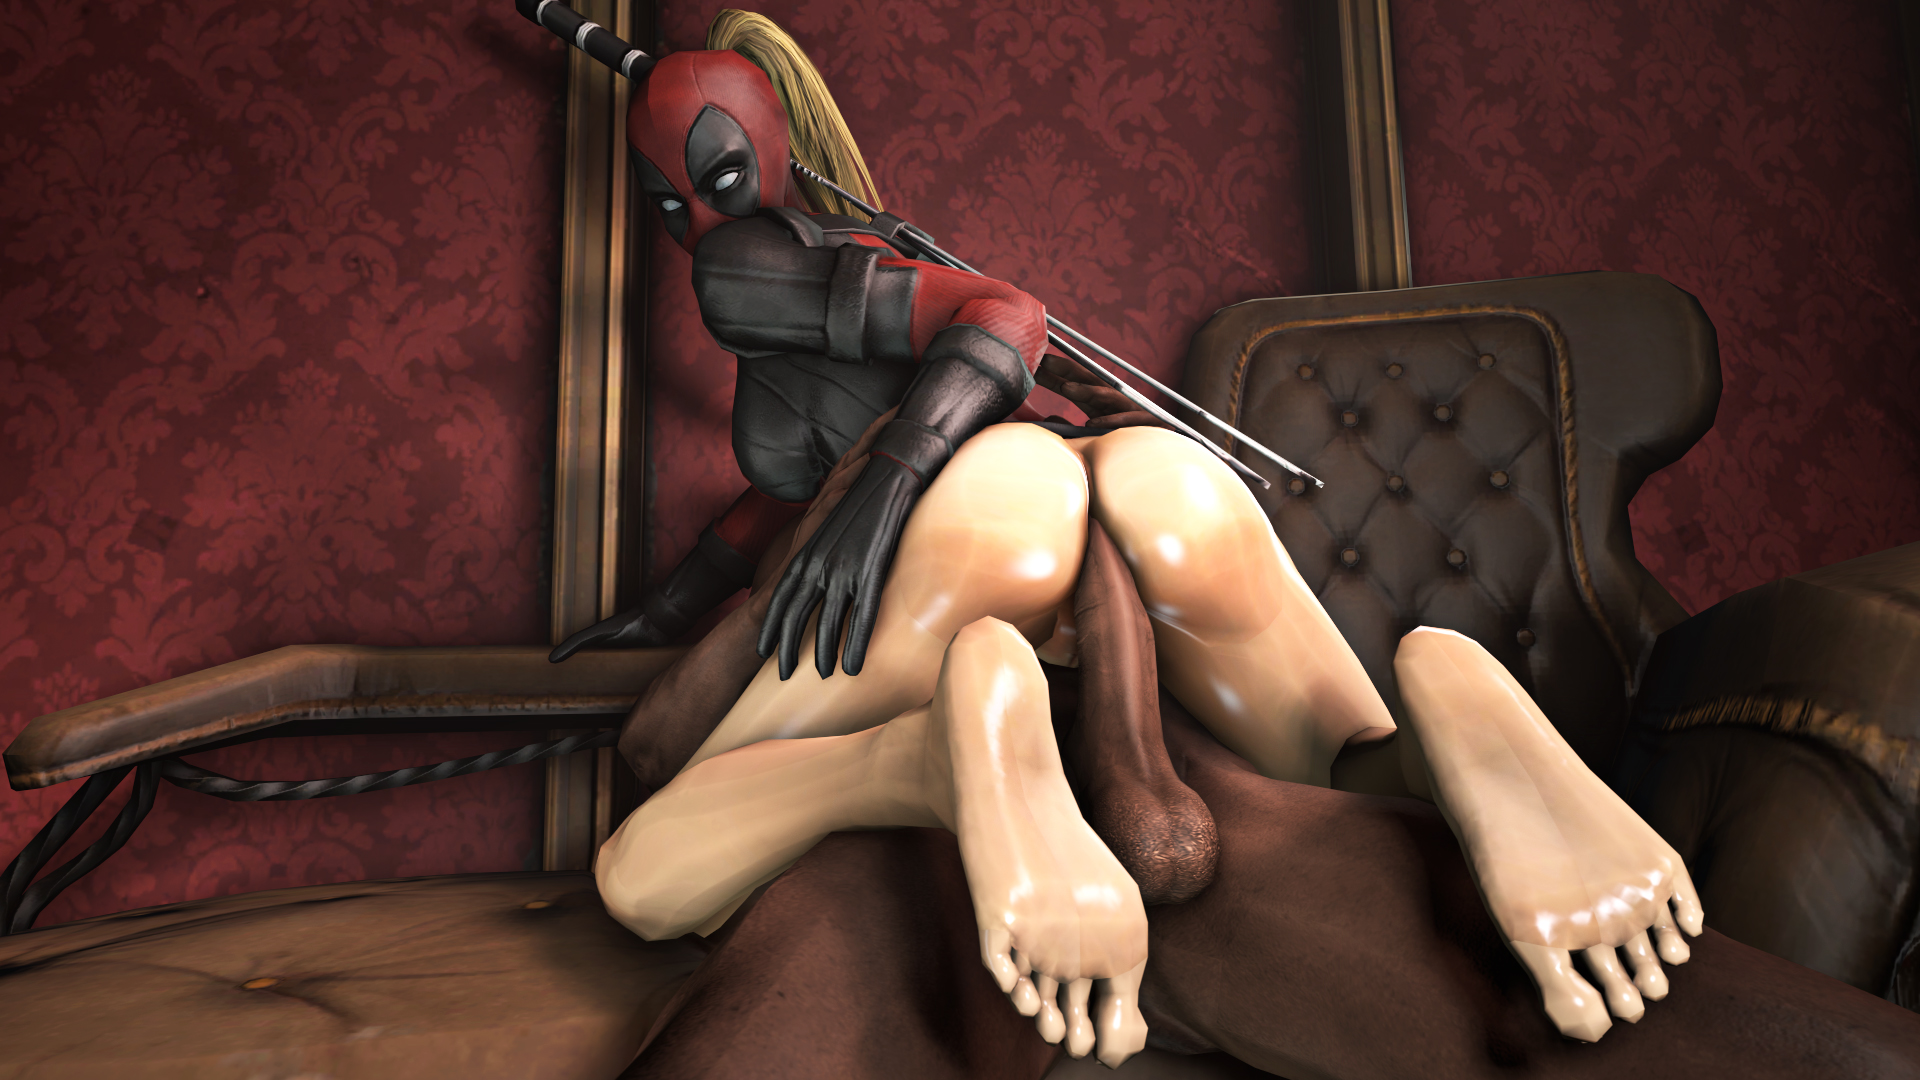 Deadpool And Lady Deadpool Porn - 1403681 - Lady_Deadpool Marvel TBoss45 source_filmmaker 1403680 -  Lady_Deadpool Marvel TBoss45 source_filmmaker ...